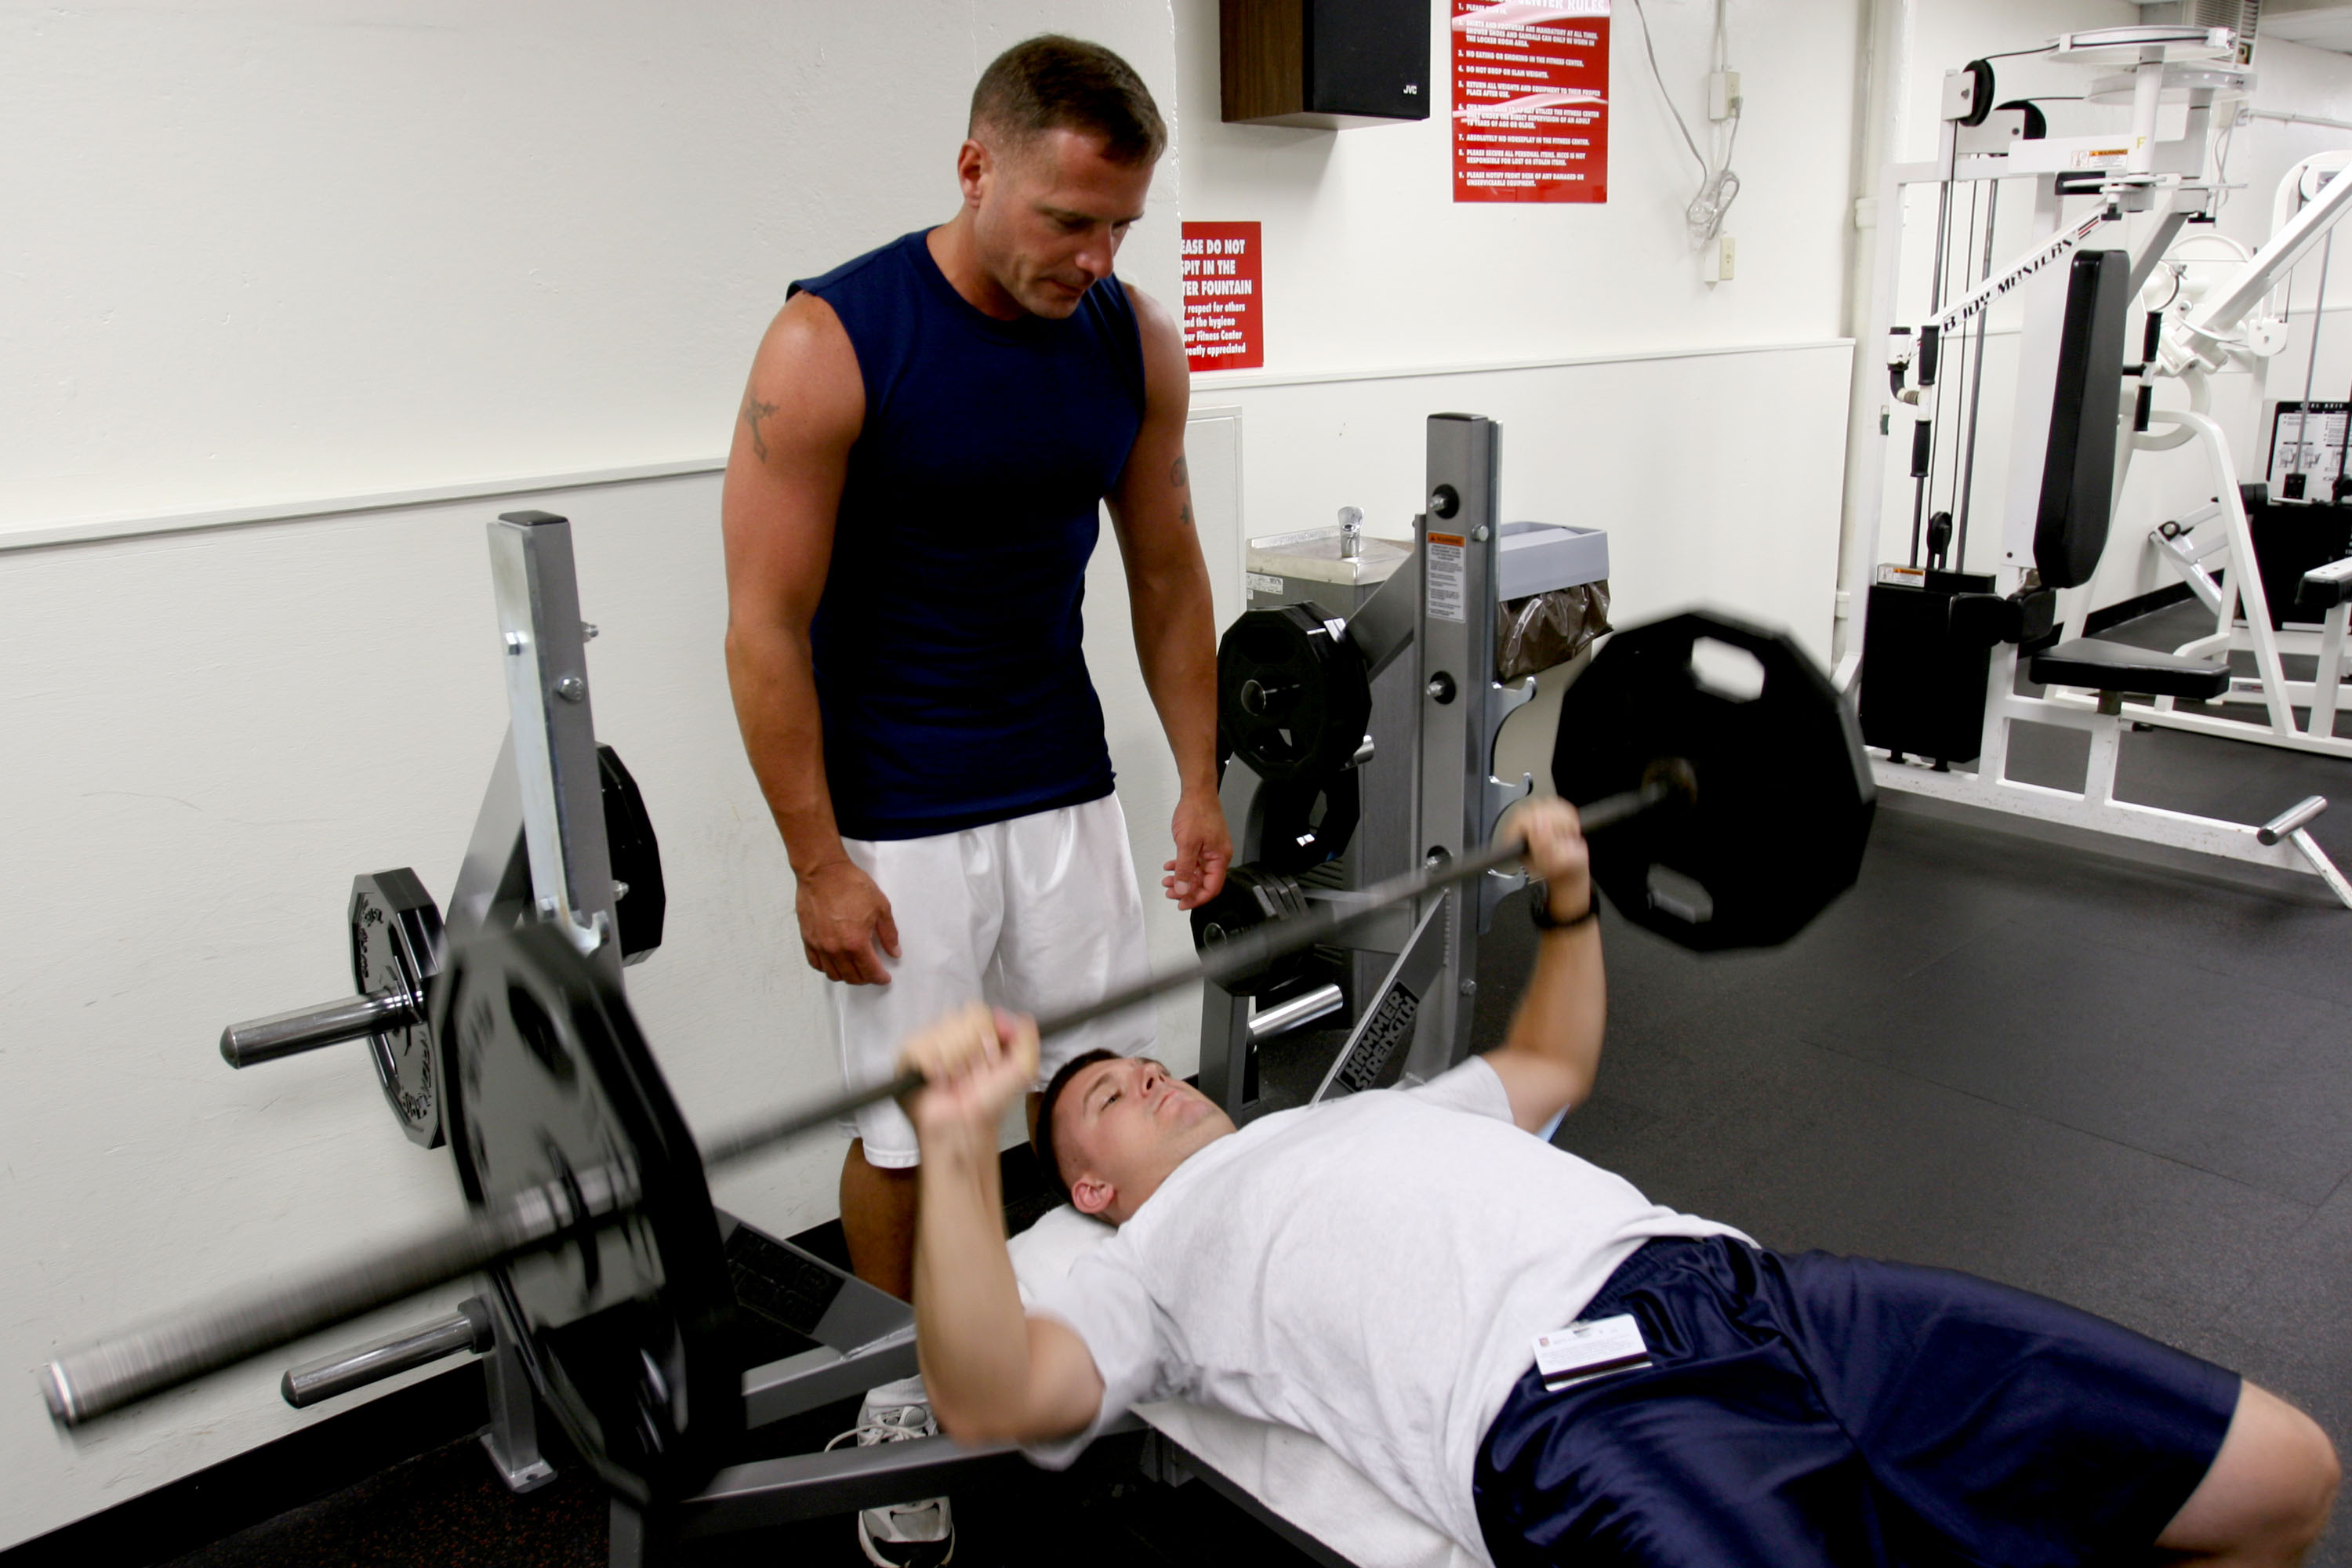 How to Improve Your Critical Bench Press